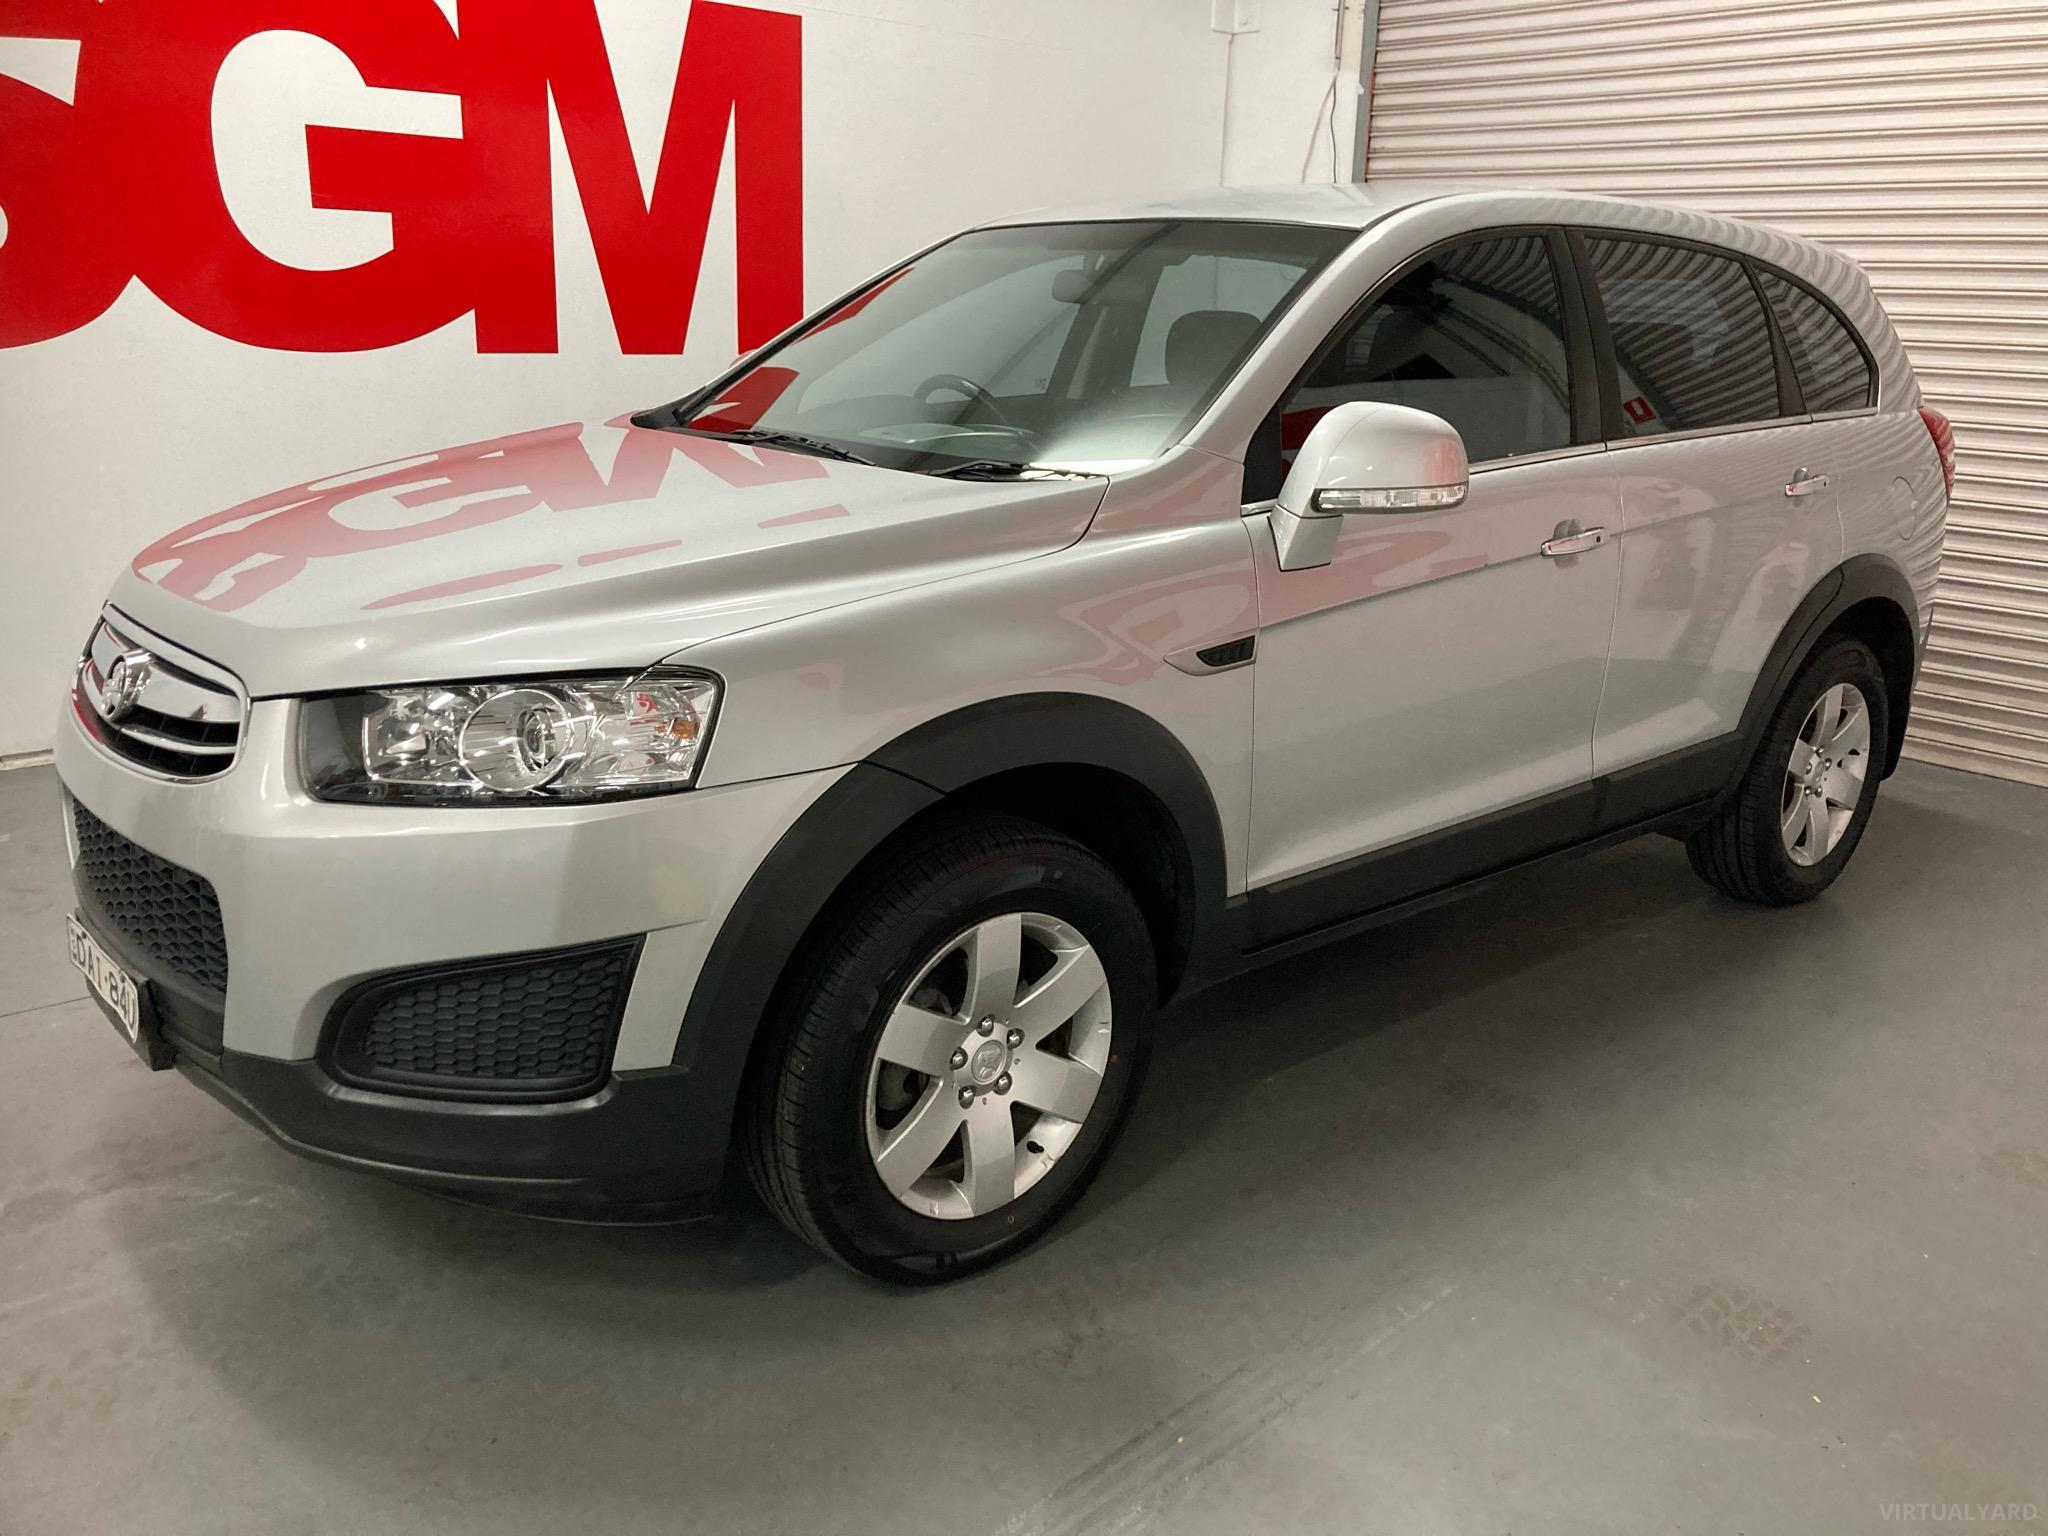 2015 Holden Captiva CG Series II 7 LS Wagon 7st 5dr Spts Auto 6sp 2.4i (FWD) Picture 8